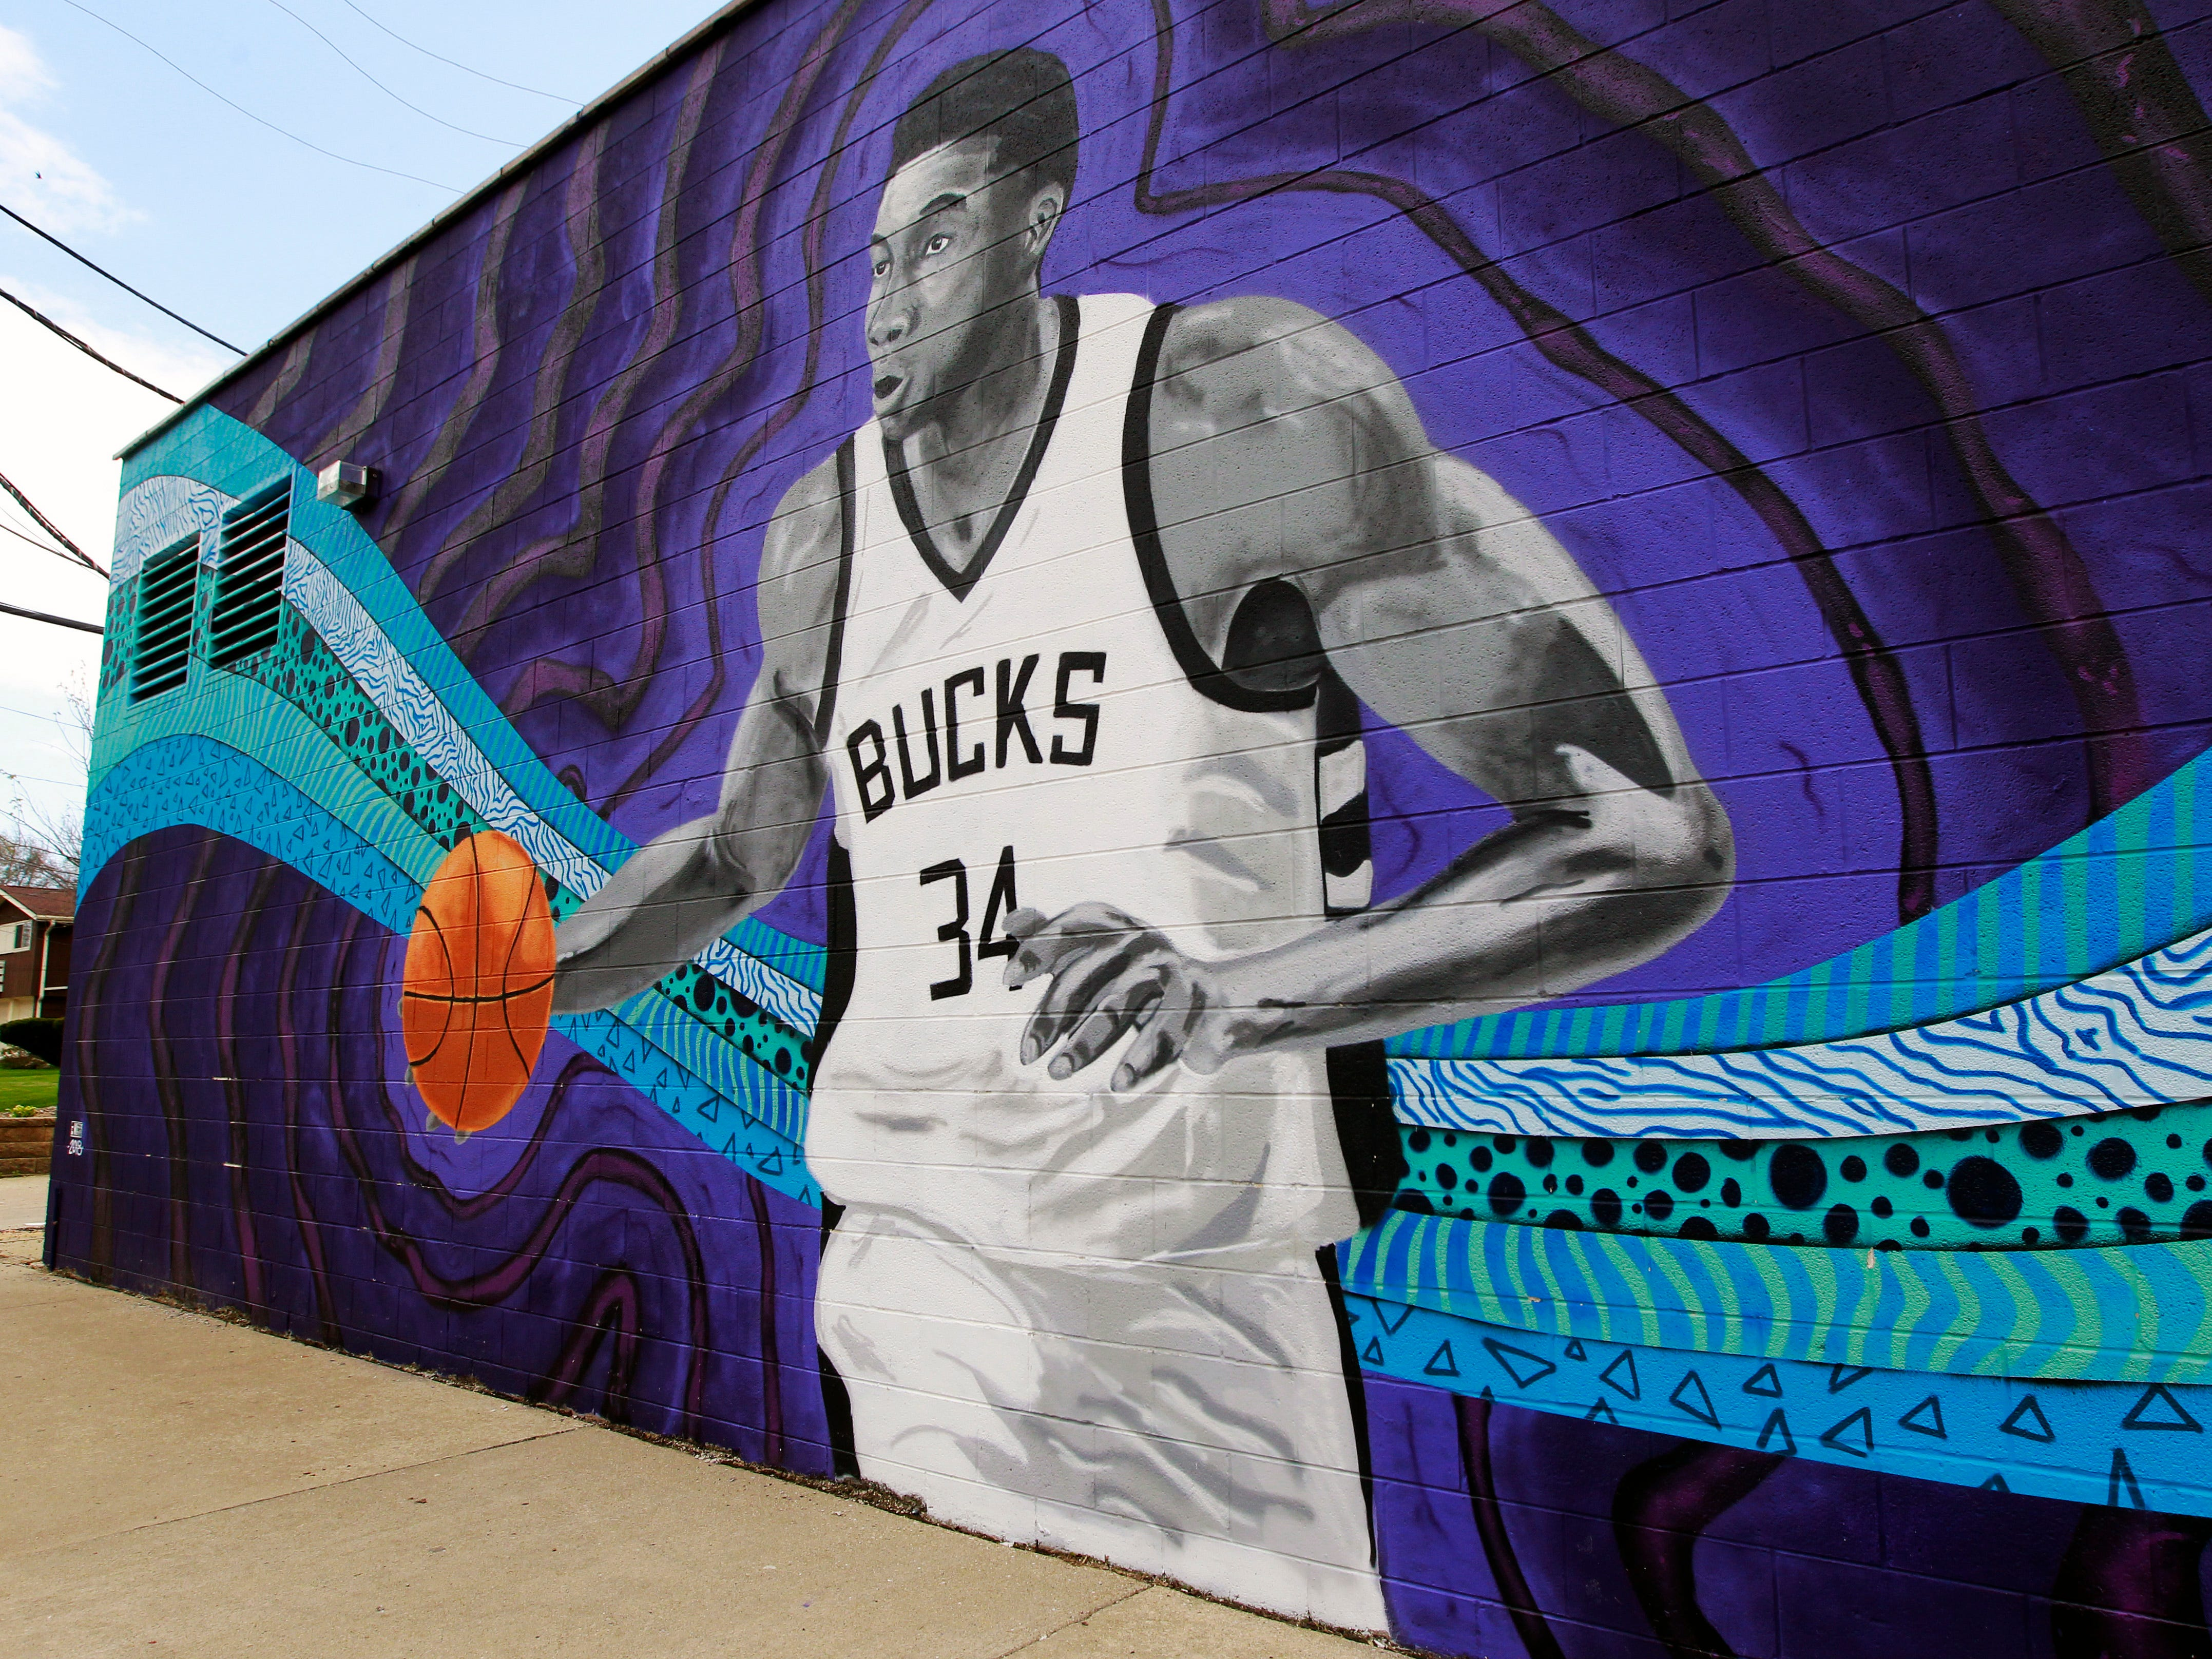 This mural of Giannis Antetokounmpo is at 3600 S. Clement Ave.